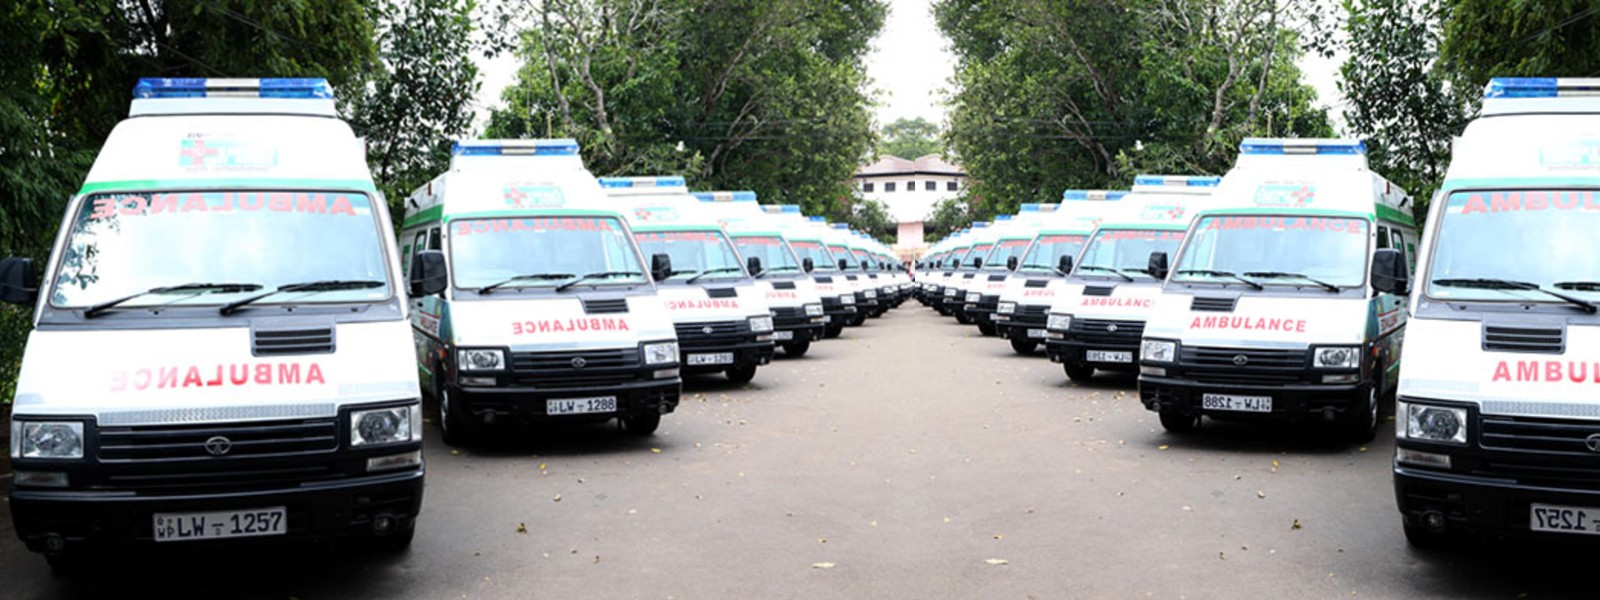 Ambulances outside of WP to be called-in for COVID services